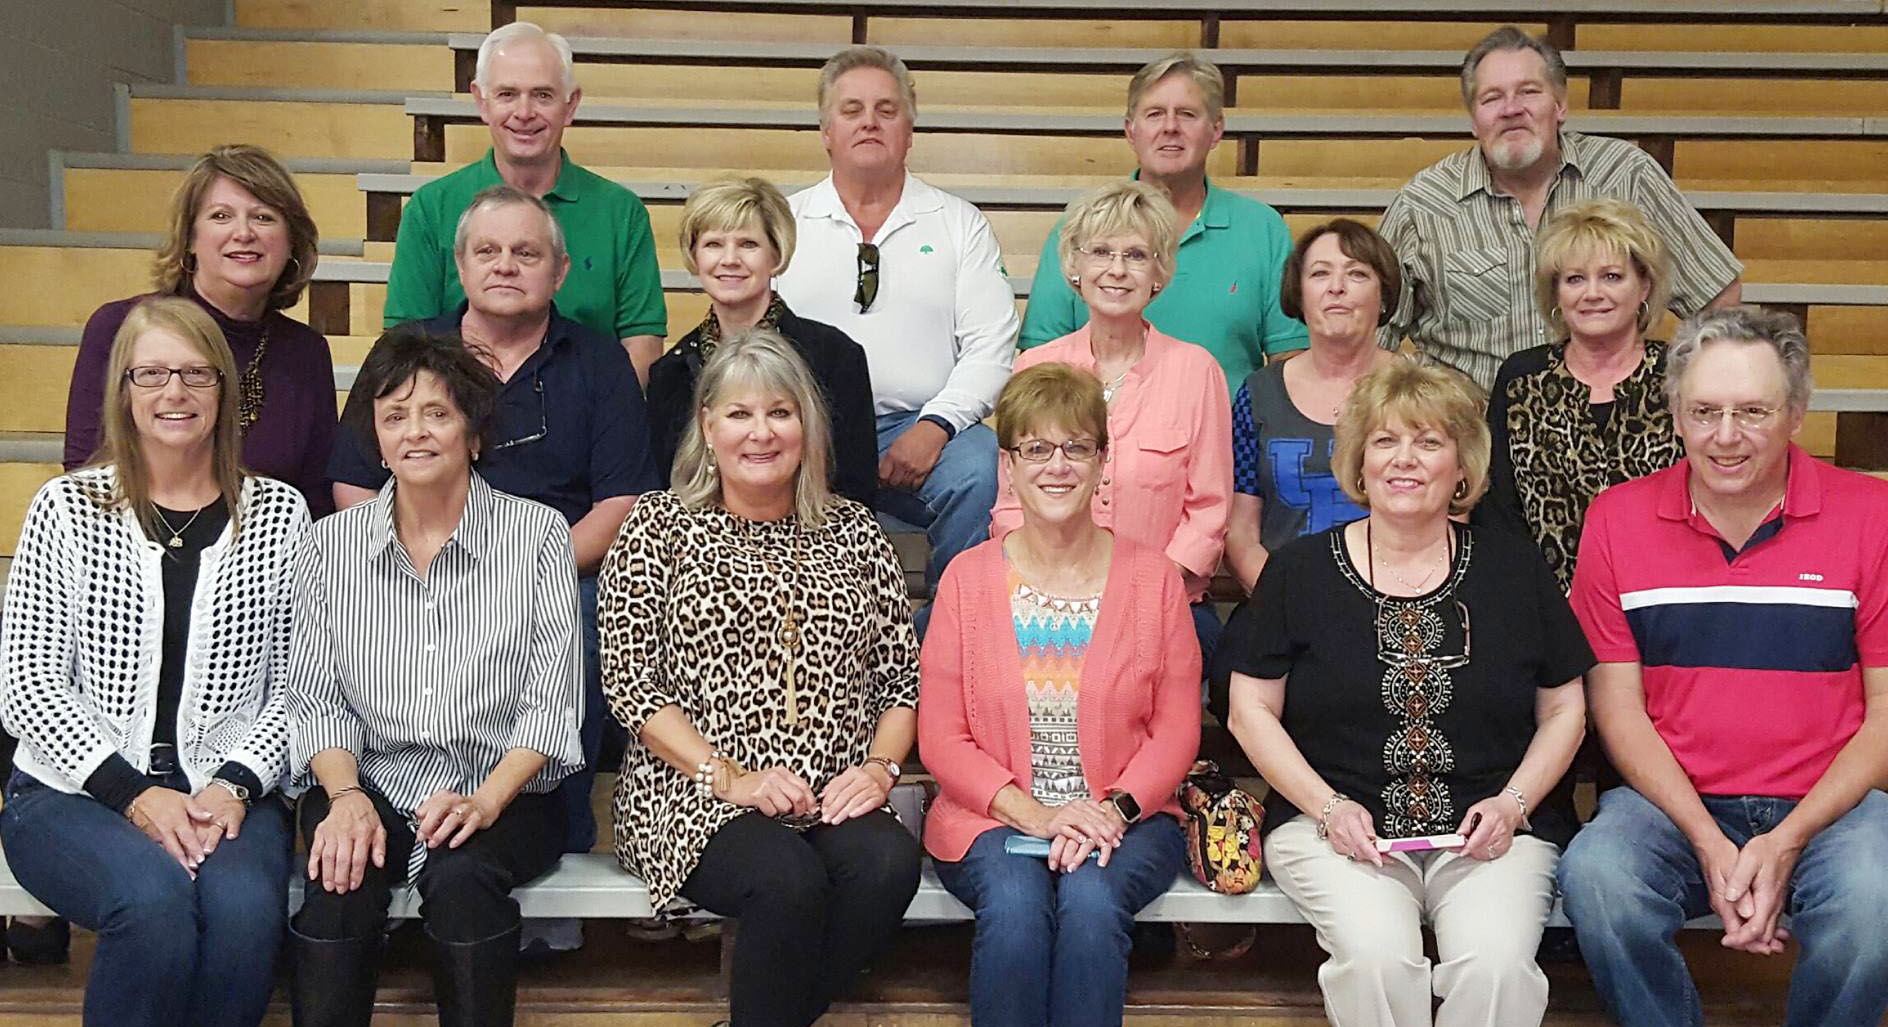 CHS Class of 1971 recently met for a reunion. Those attending are, from left, front, Pat Rafferty, Jamie Shaw, Denise Squires, Robbie Owen, Mitzi McGlocklin and David Sparks. Middle, Donna Cooper, Steve Buckner, Donna Bayers, Janet Morris, Shirley McGlocklin and Tibby Miller. Back, Freddie Cornett, Roger Cook, Dwayne Squires and Mike McKinley.